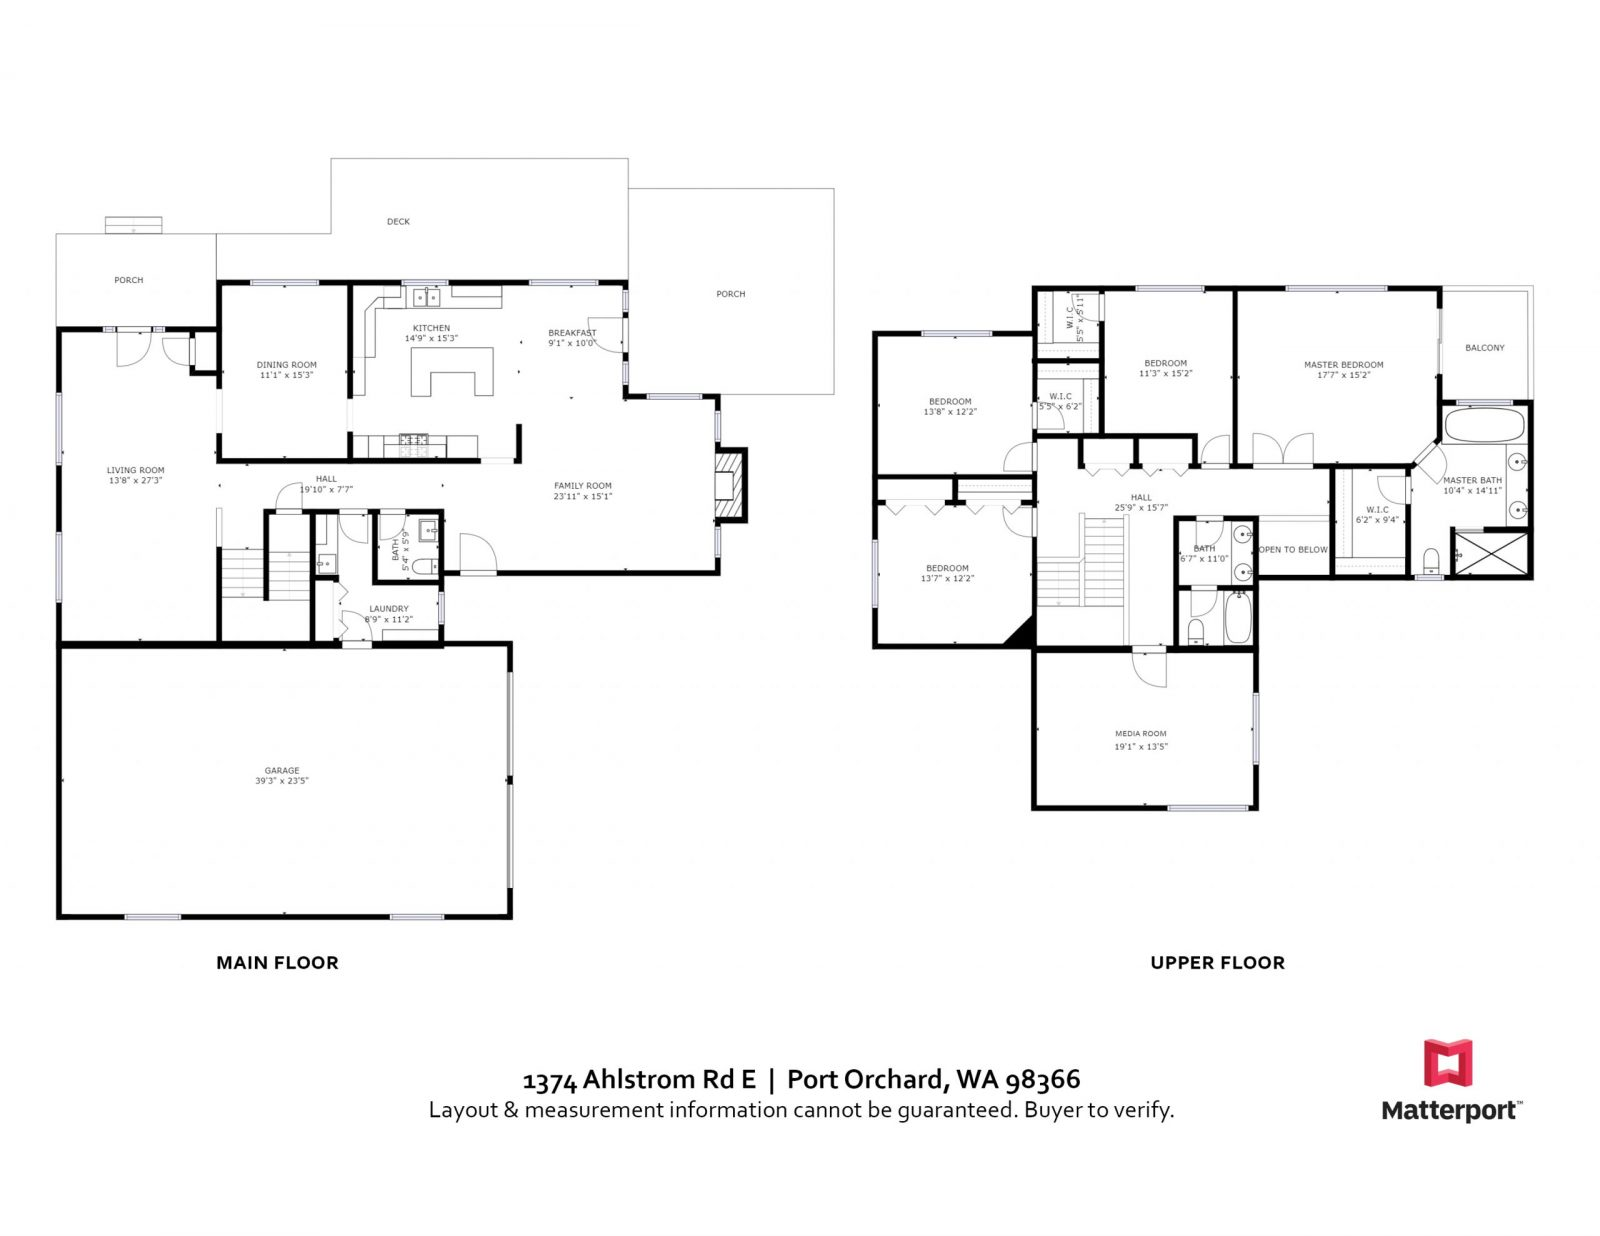 FLOOR PLAN 1374 Ahlstrom Rd E Pt Orchard